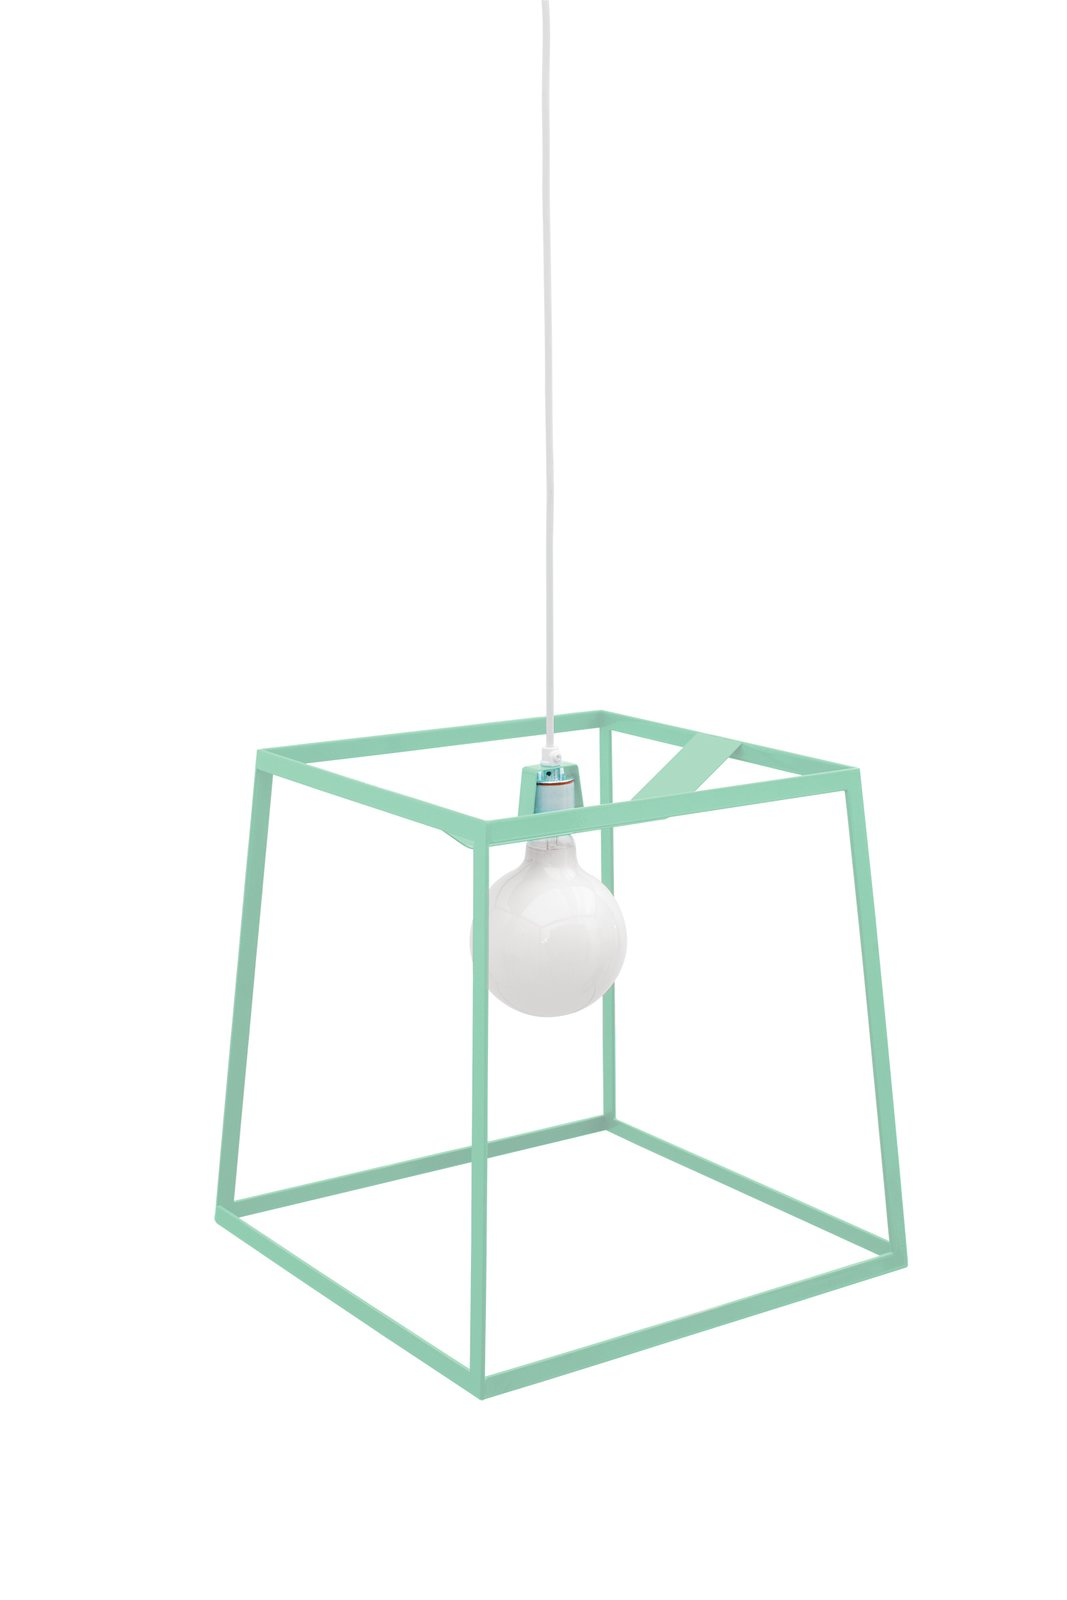 Frame light in Mint by Iacoli and McAllister. A powder-coated steel frame gives these spare pendant lights shape via negative space. Available in three sizes and six colors.  60+ Modern Lighting Solutions by Dwell from Home Trend: Pastel Furniture and Accessories